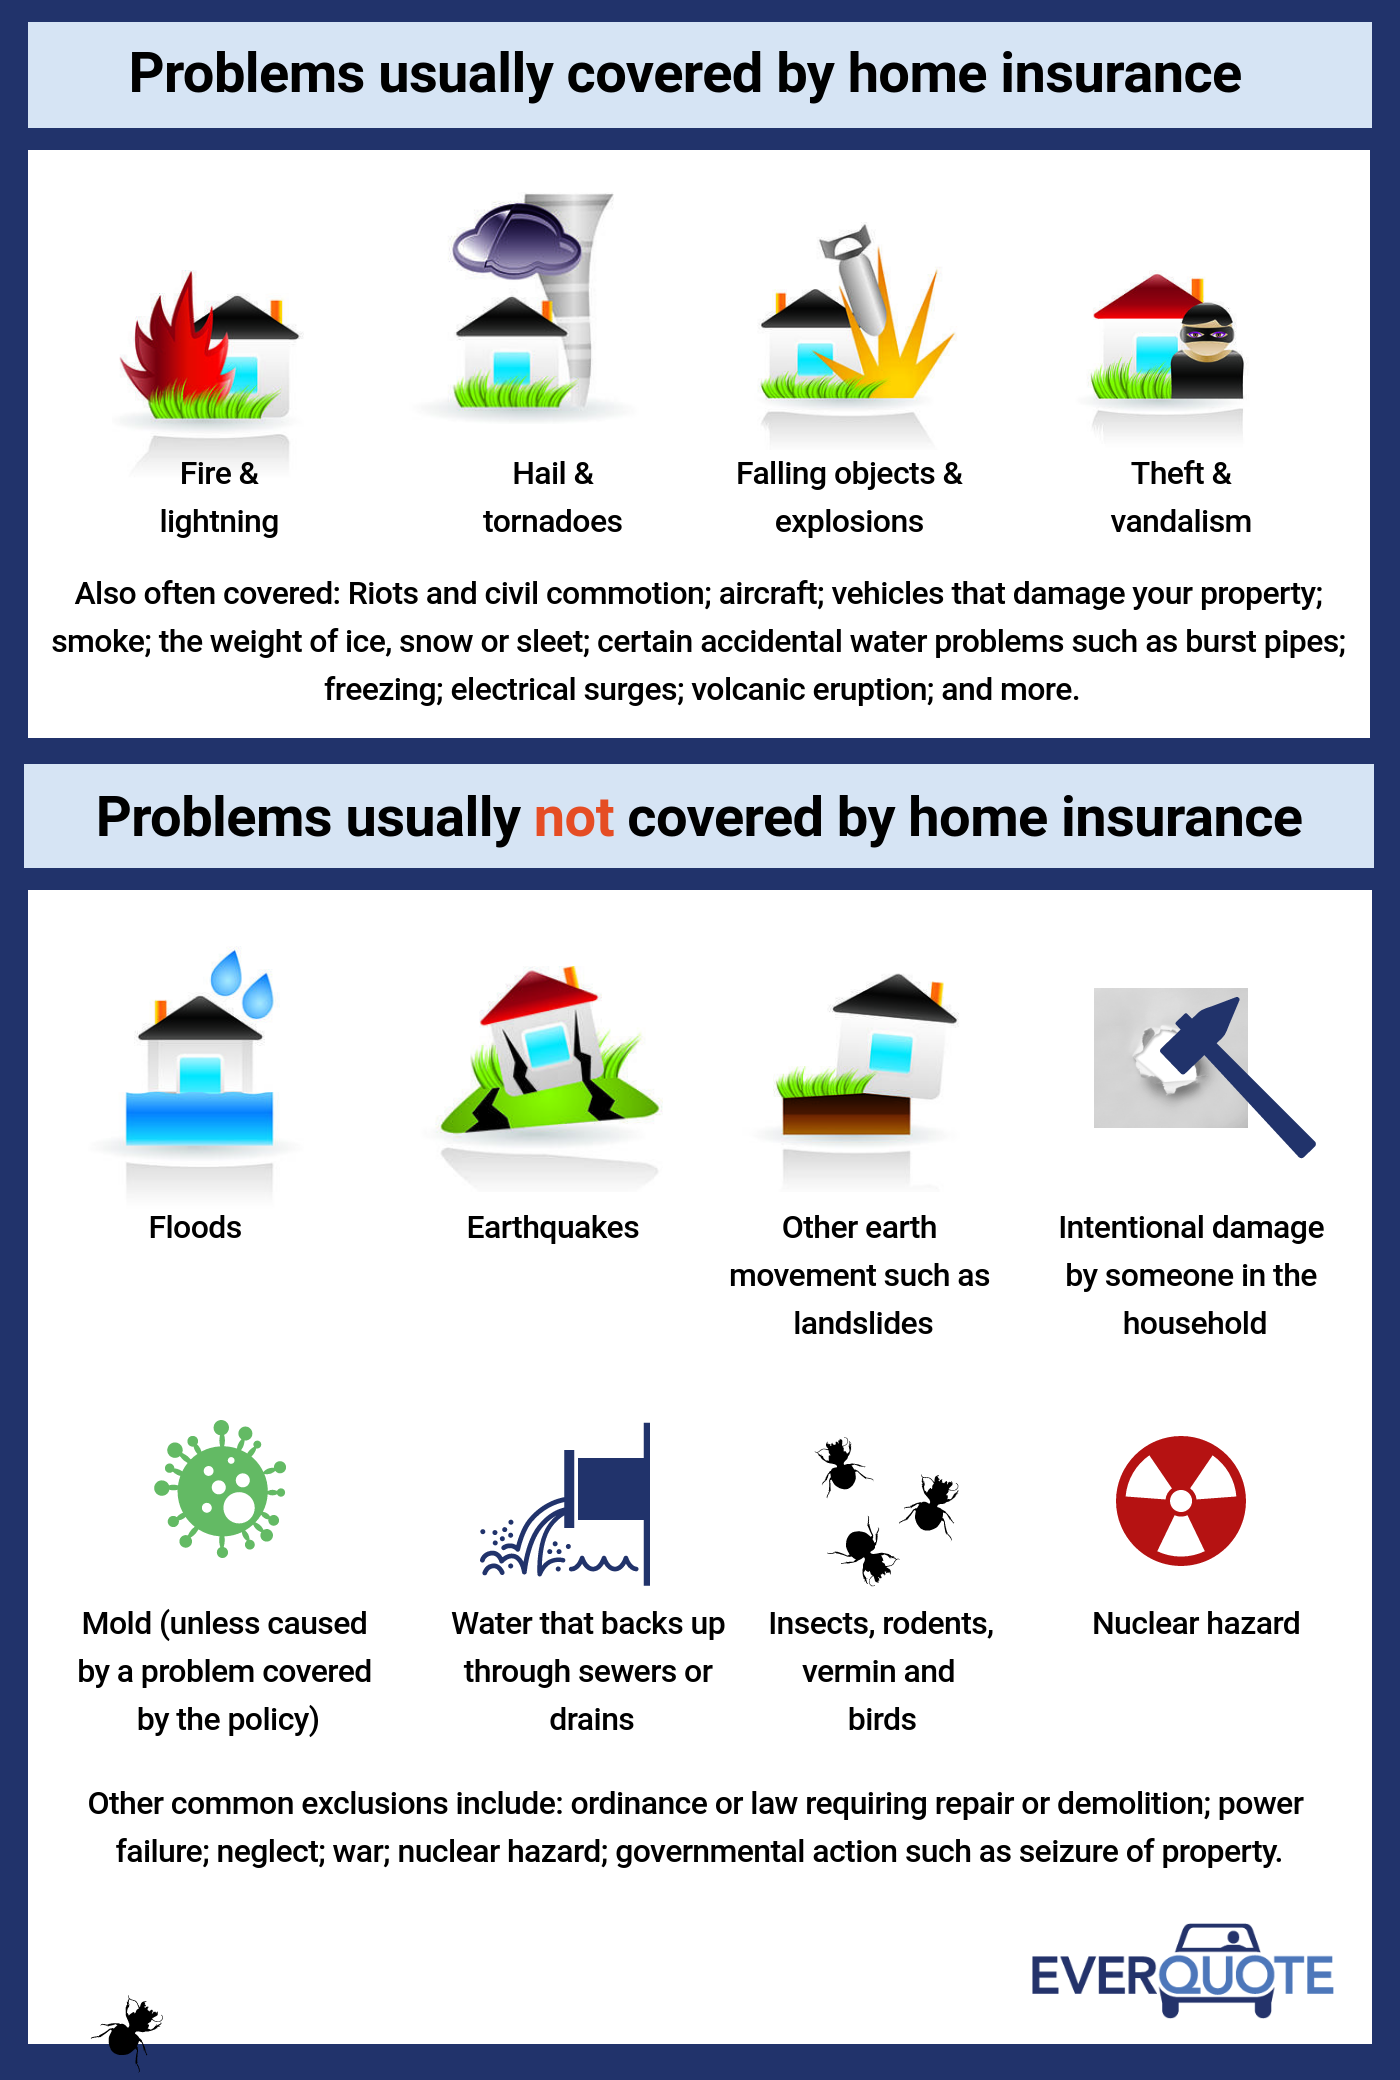 Problems usually covered by home insurance